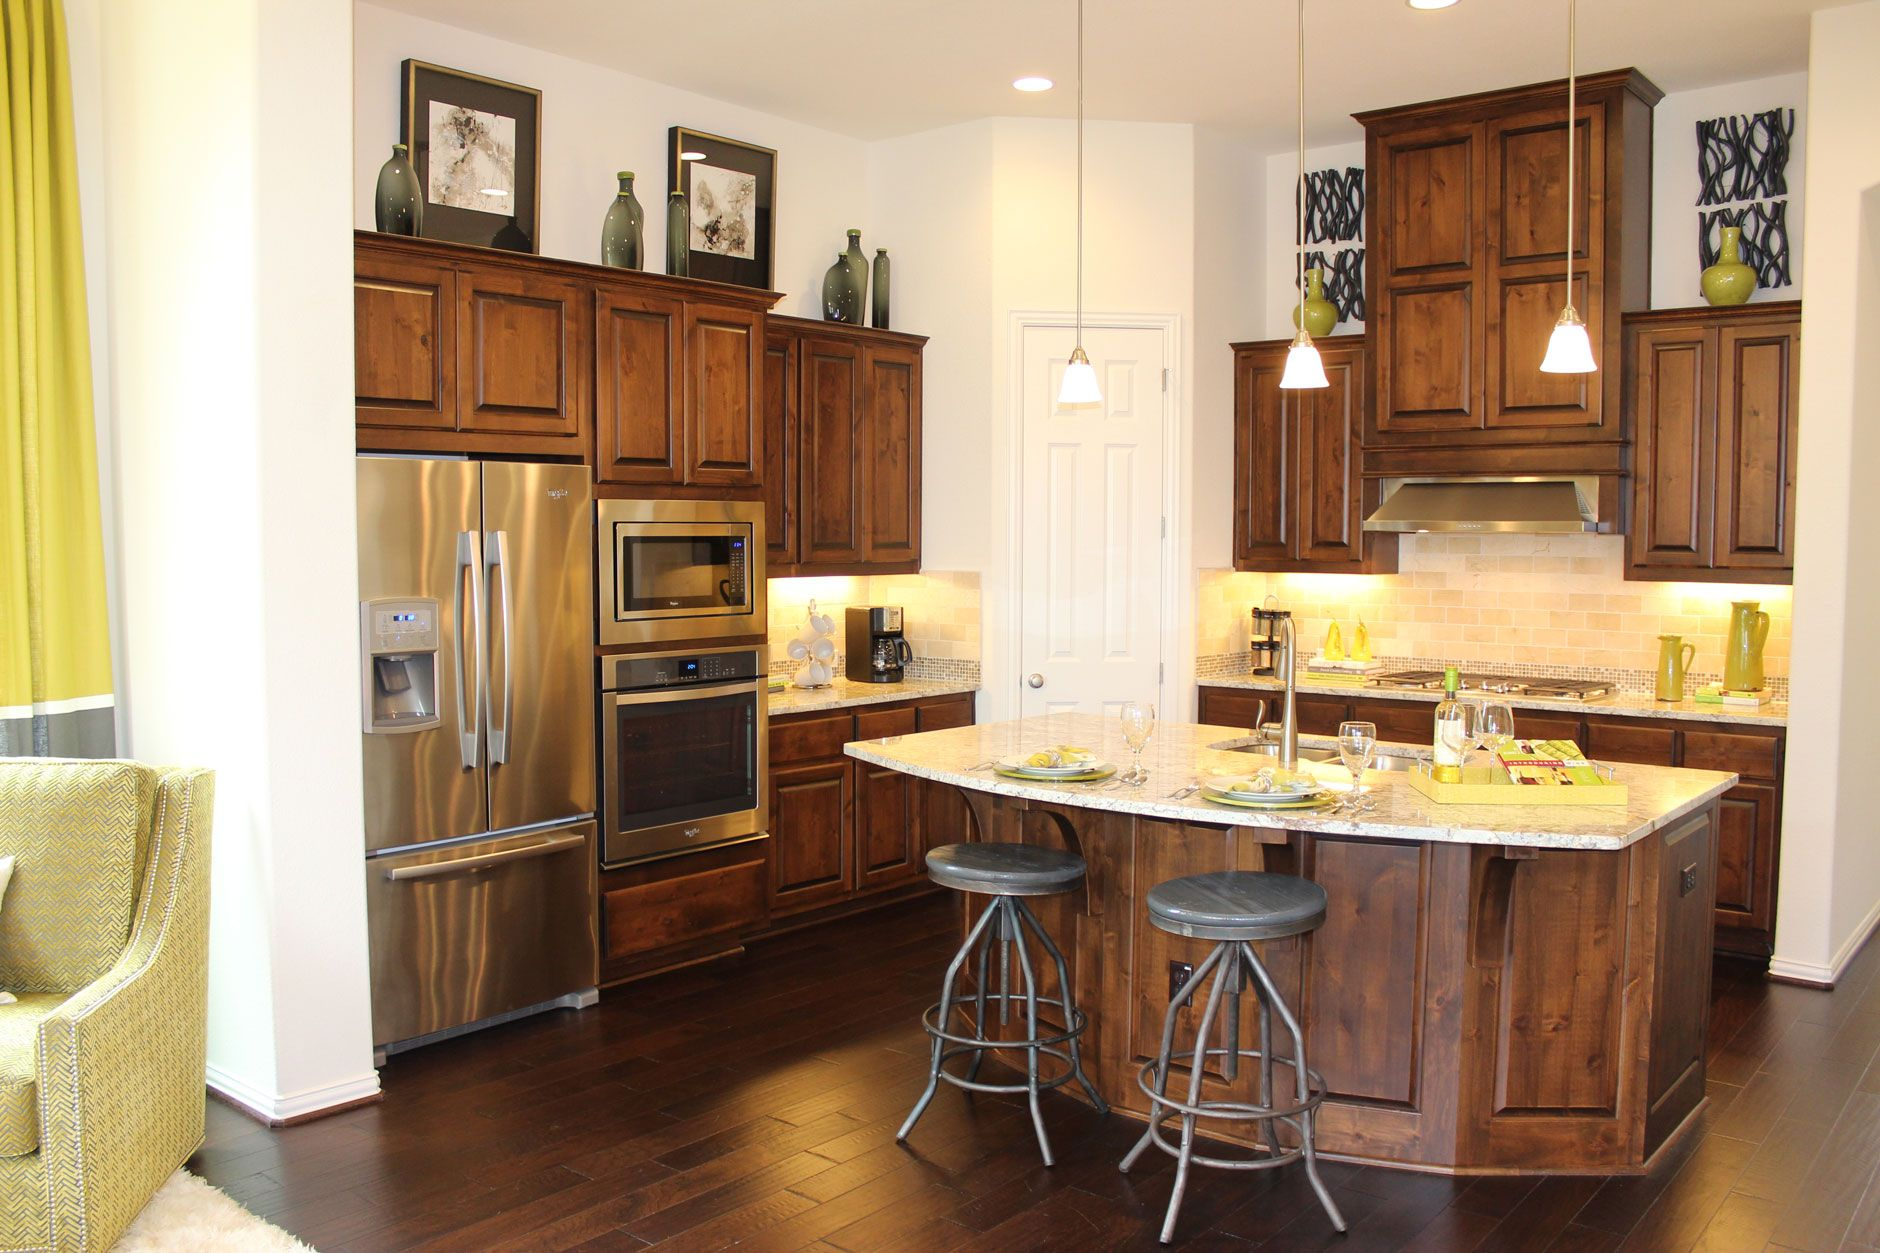 Model Home With Knotty Alder Cabinet Doors Large Island And Dark Wood Floors Lime Green CabinetsCabinet ColorsModel